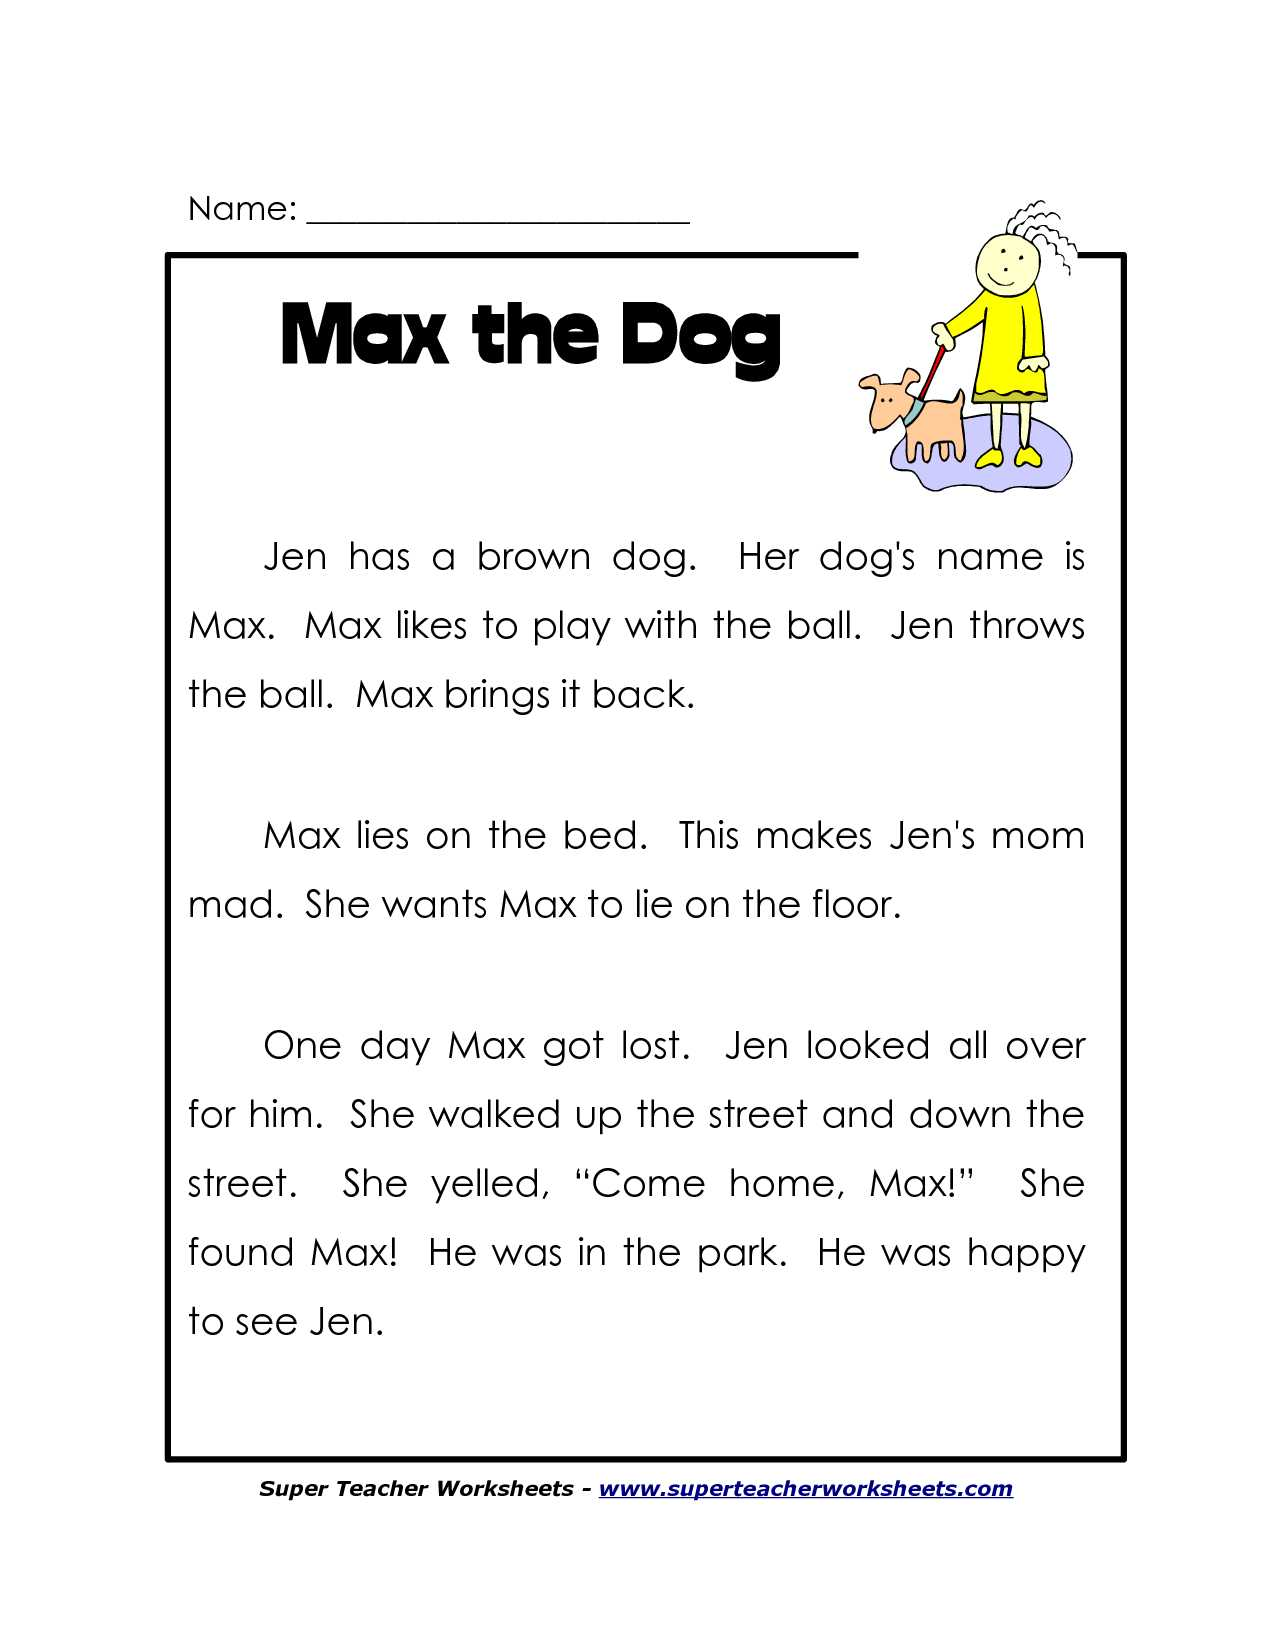 Free 1st Grade Comprehension Worksheets Also formidable Easy Reading Worksheets for Grade 1 In Reading is Known